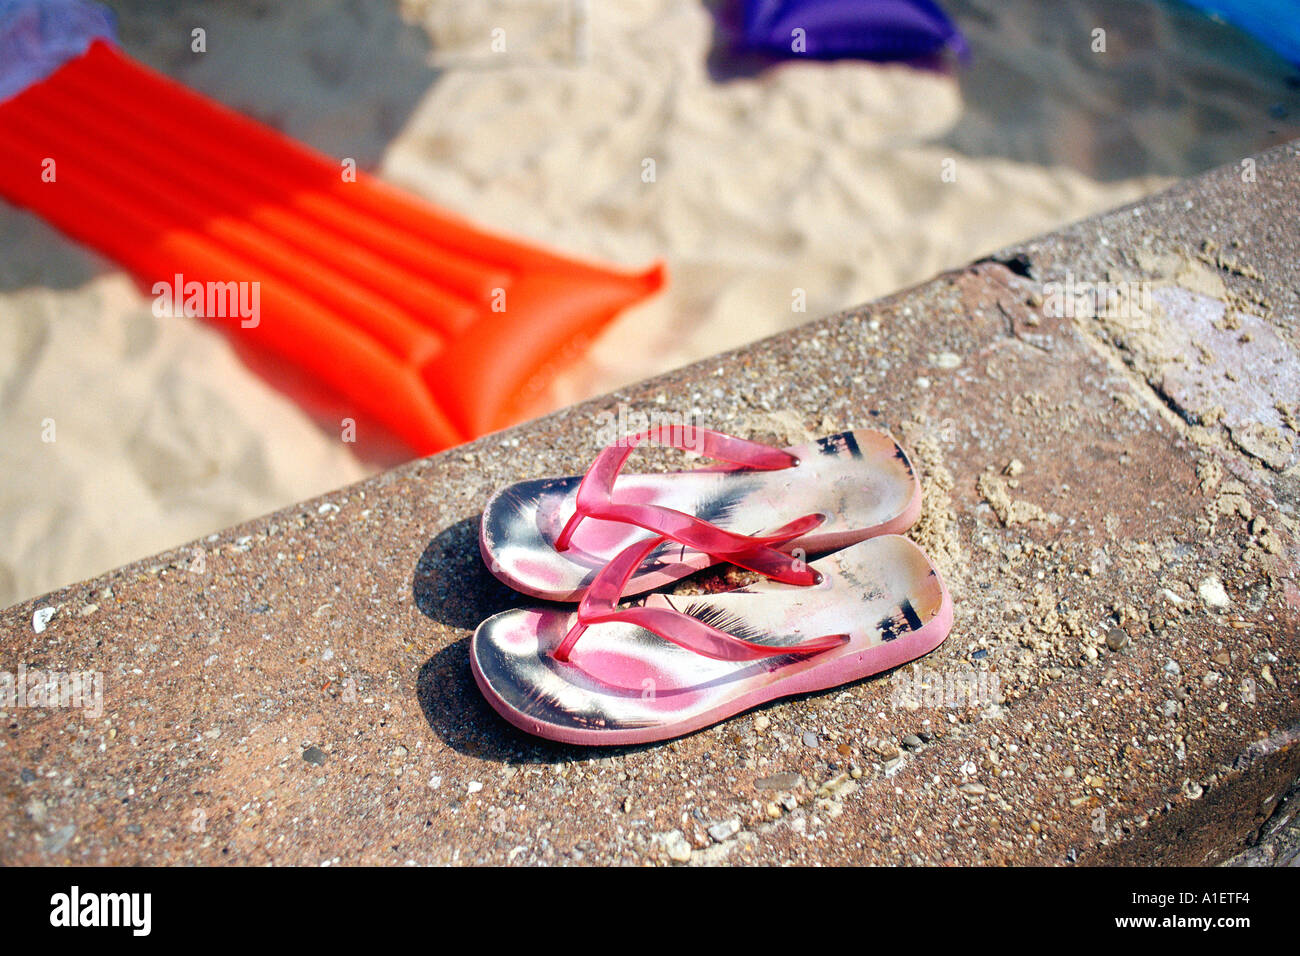 Flip-flops on the beach - Stock Image